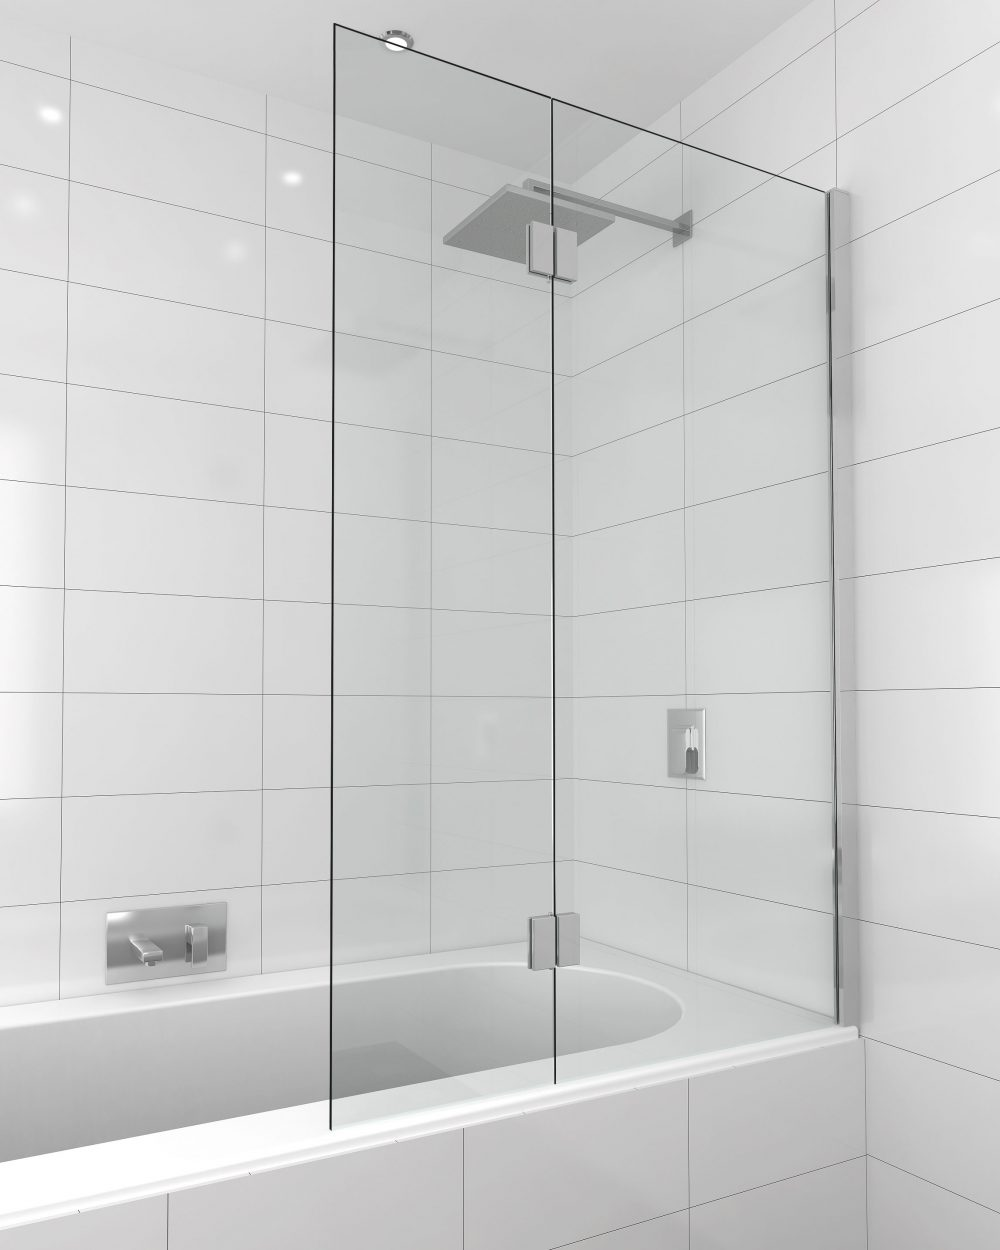 frameless glass bath panel with hinge